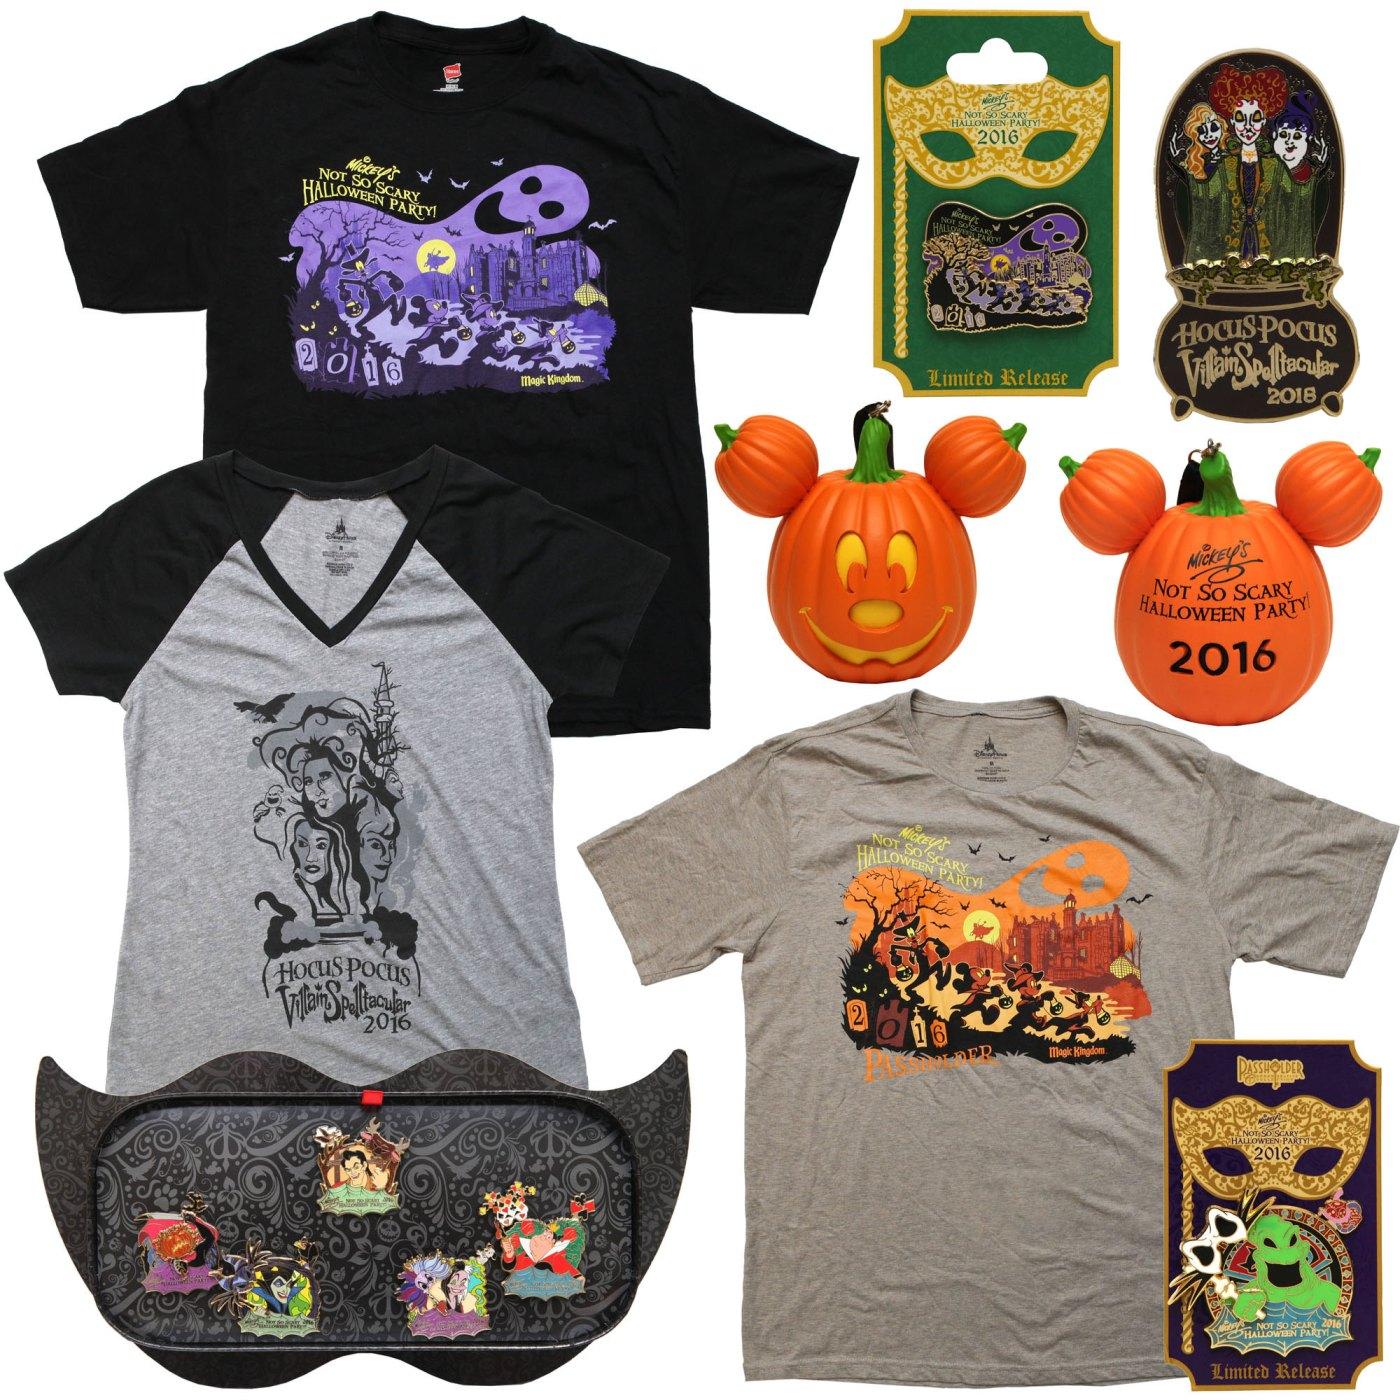 Disney Parks Blog Unboxed – Mickey's Not-So-Scary Halloween Party 2016